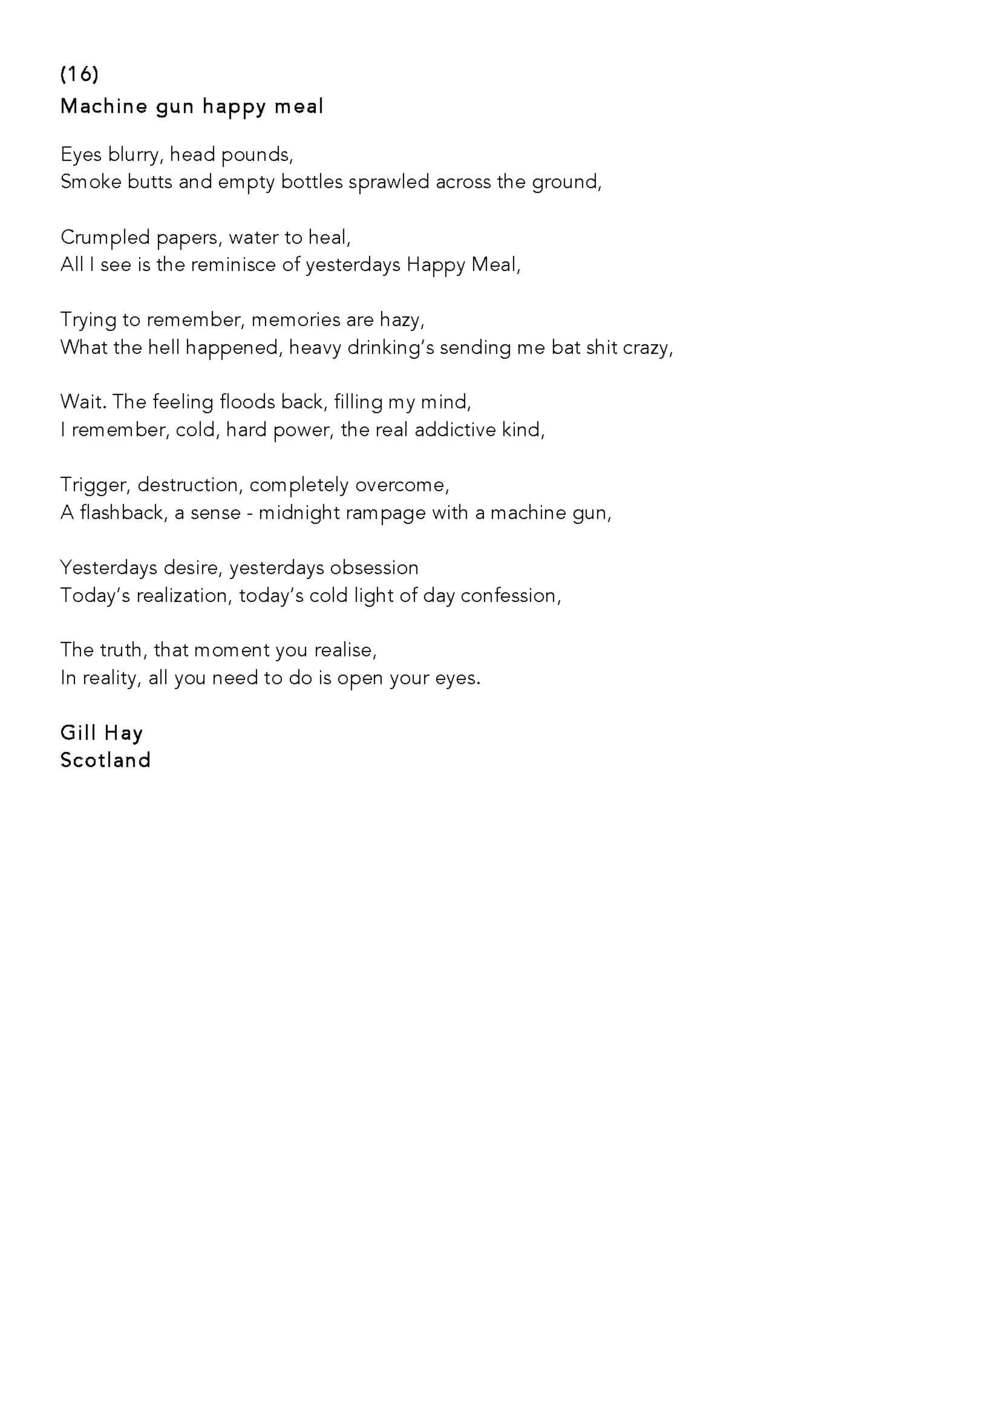 Poetry Collection - Everyone can Poetry _ For 19 April 2014_Page_17.jpg